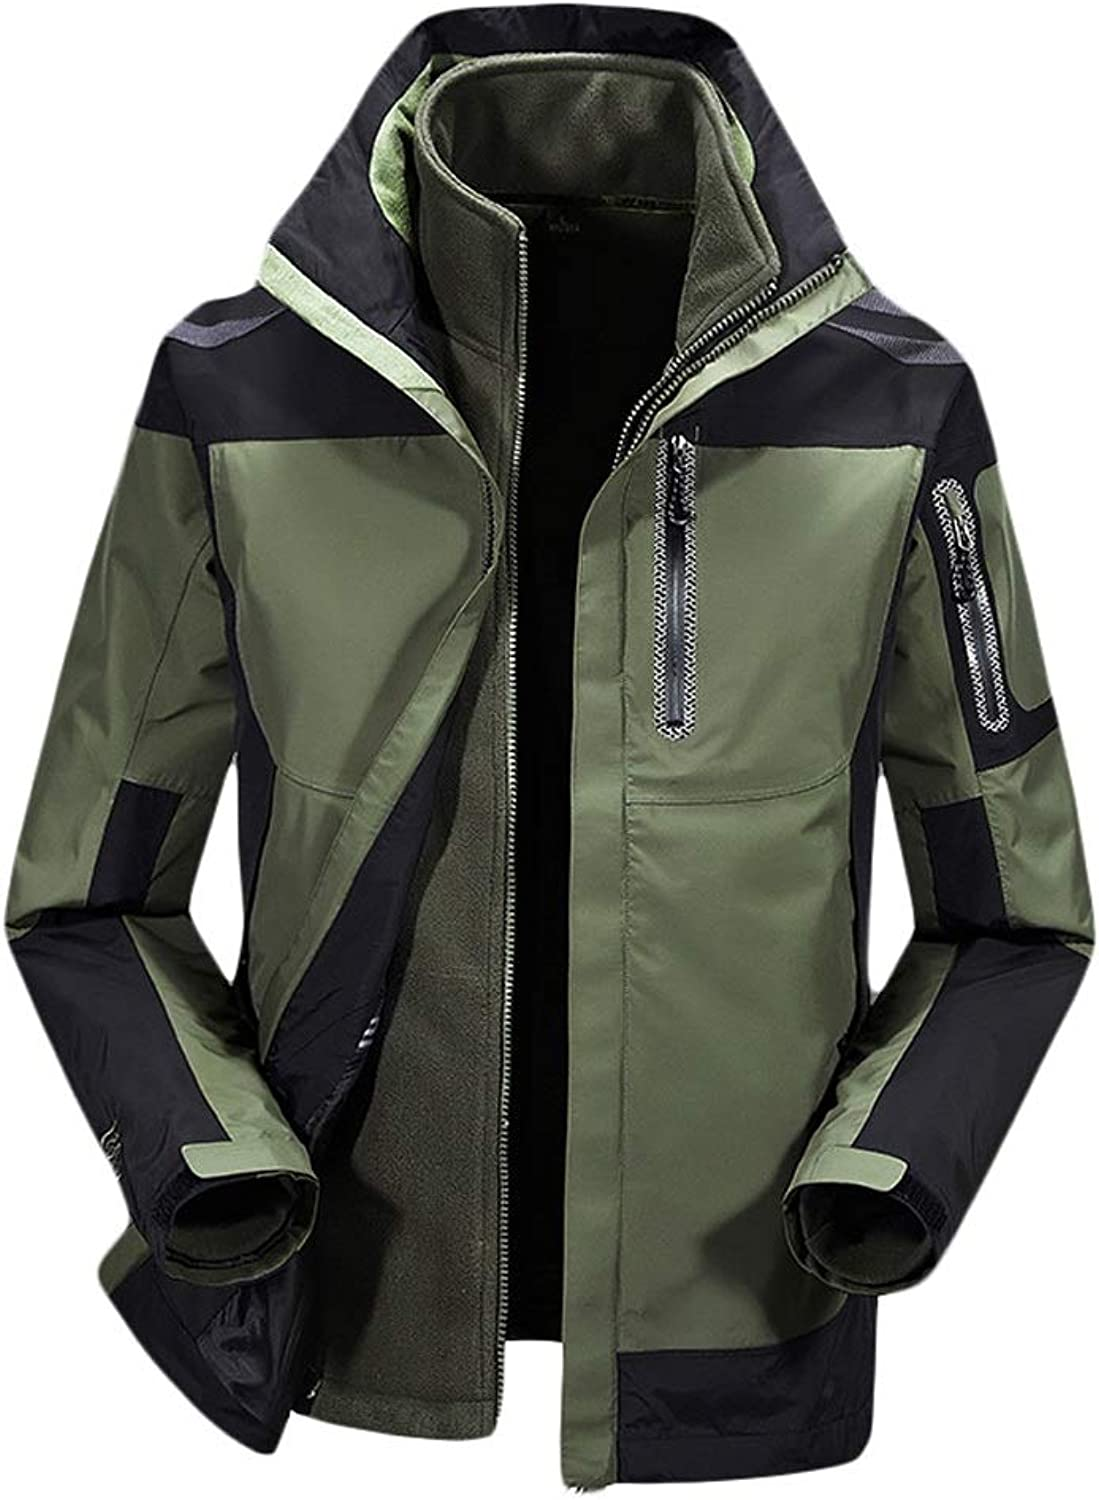 Yzibei Men's Windproof Ski Rain Snow Jacket Waterproof Jacket with Hood, Breathable Raincoat Mountain Hiking Walking Travelling Outdoor Jacket (color   Army green, Size   XL)